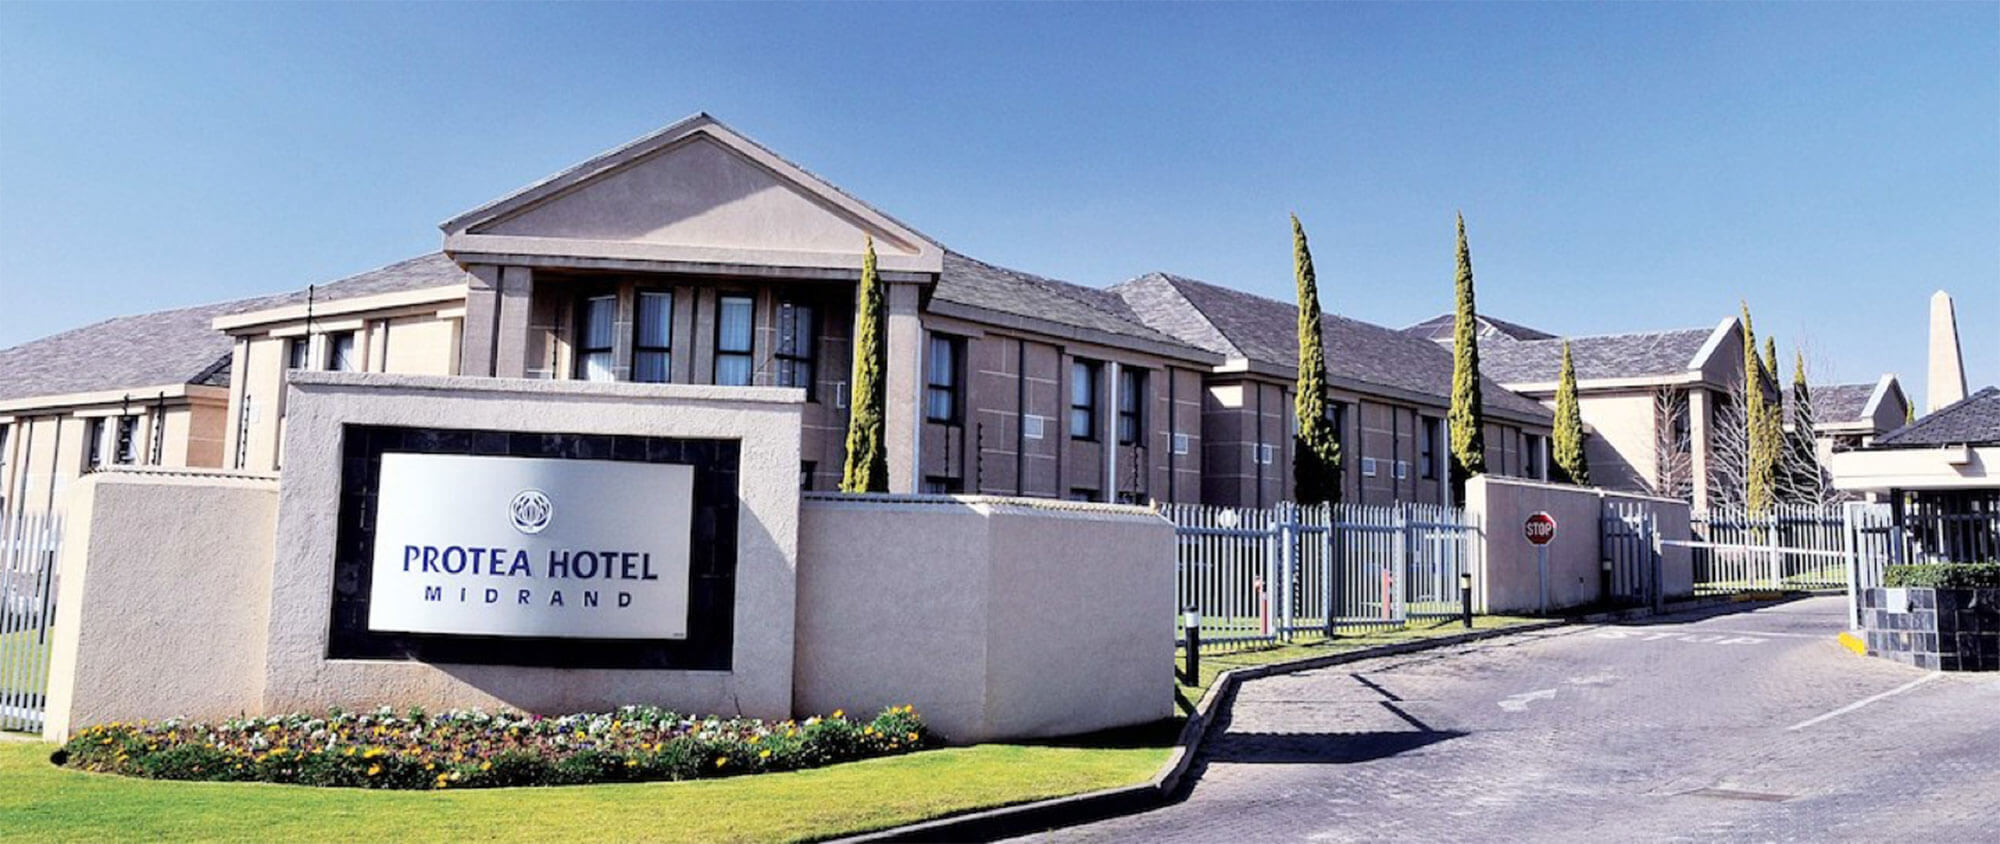 Proteahotel4